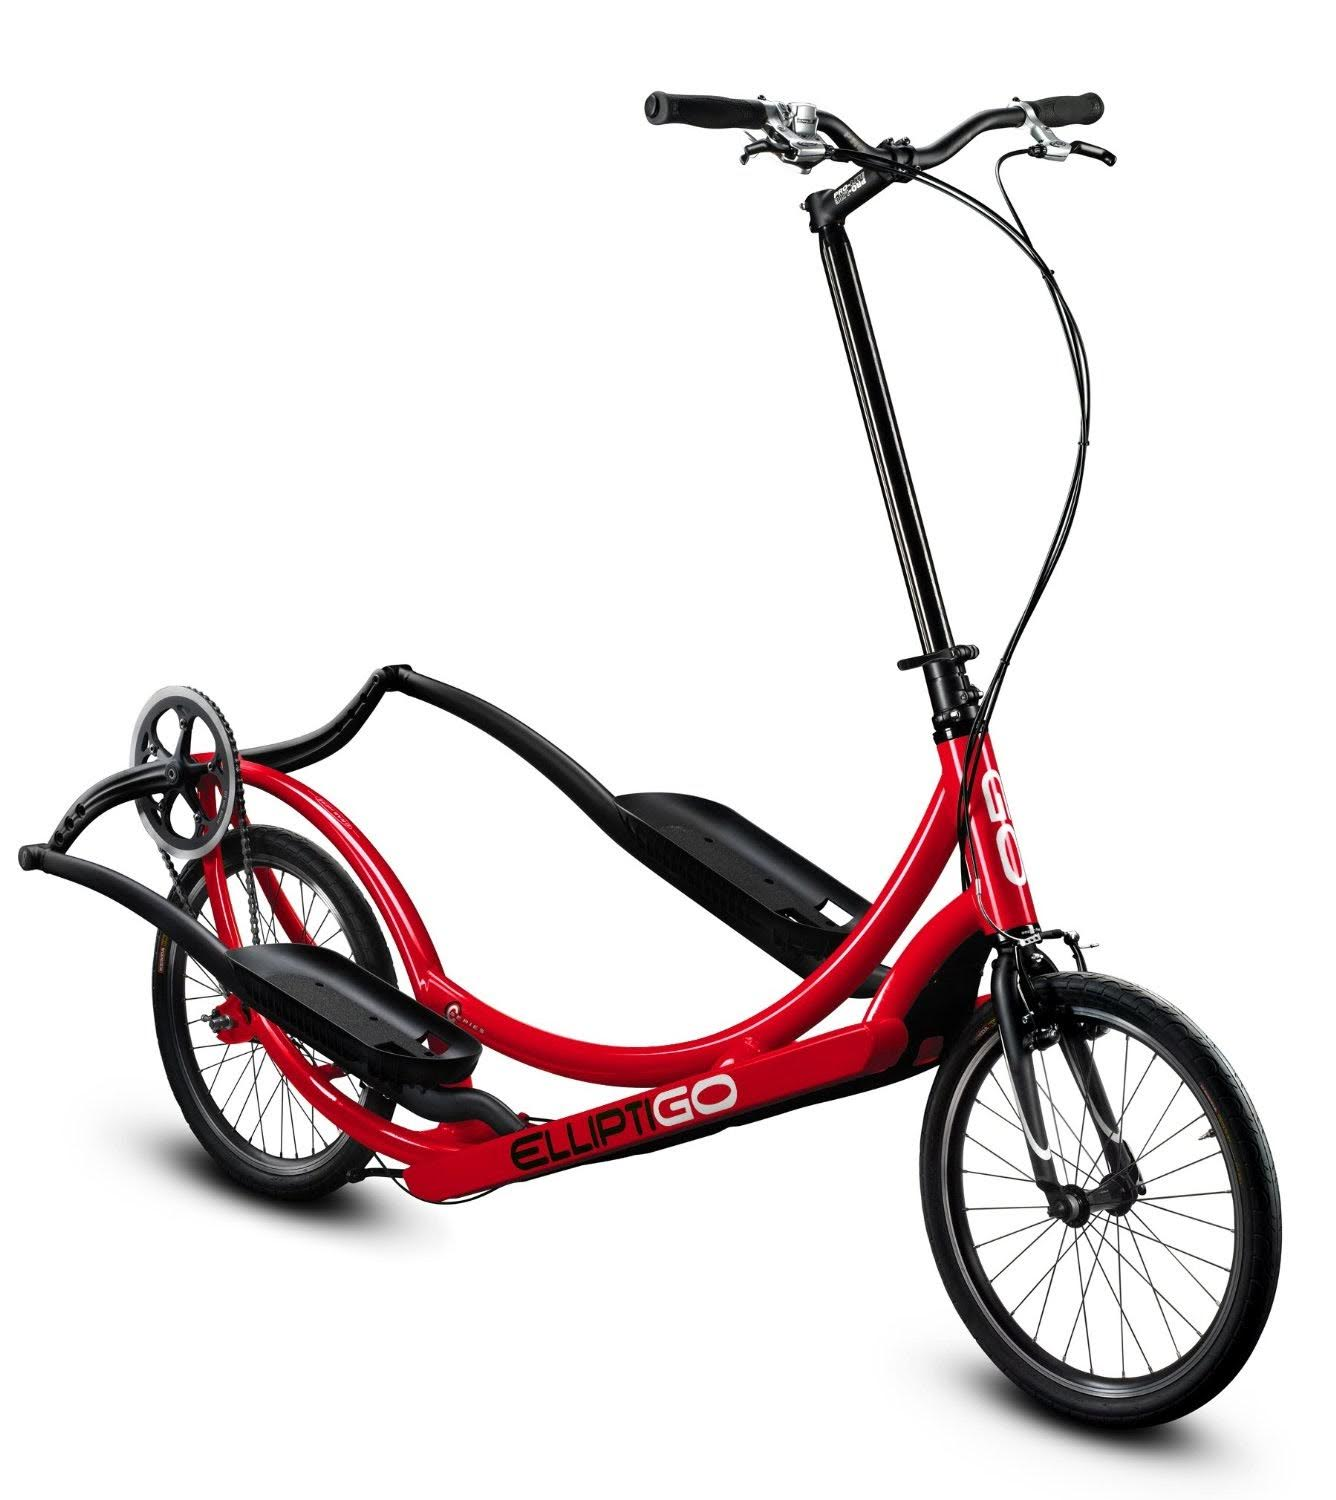 Elliptical Bike For Outside: Exercise Bike Zone: Get The Feeling Of Running On Air With